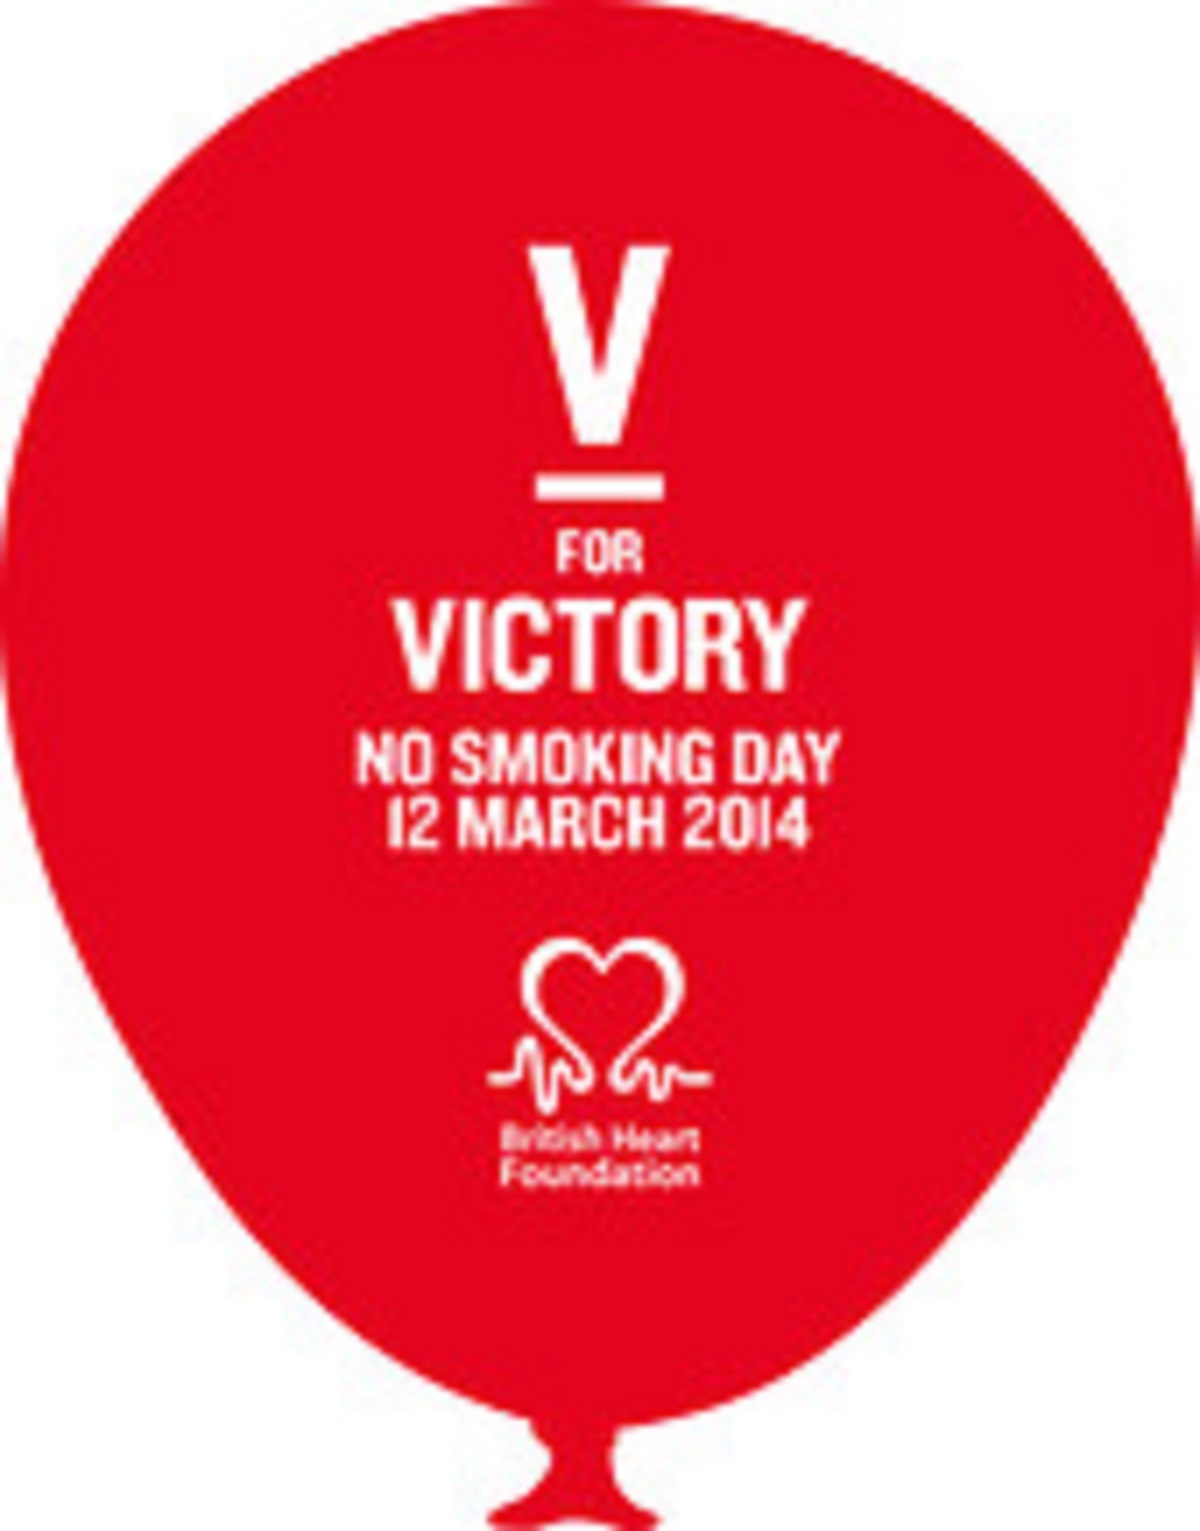 V For Victory is theme of this year's No Smoki